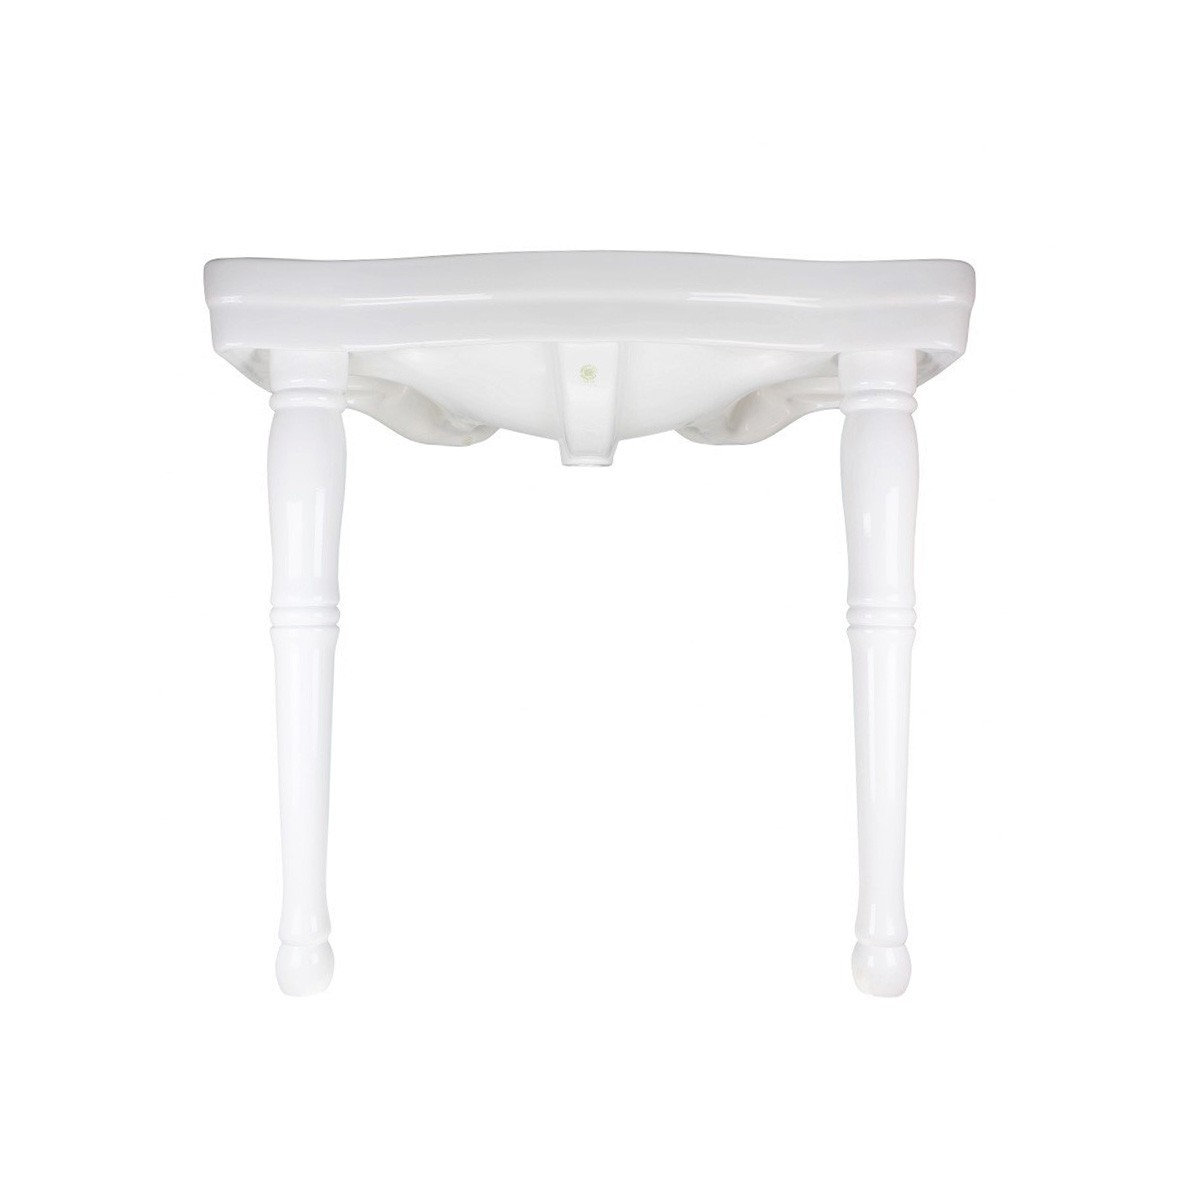 Console Sink White Porcelain with Hardwood Leg, 8 Faucet and P Trap Glossy Console Bathroom Sink Console Sink With Spindle Legs Console Sinks For Small Bathrooms